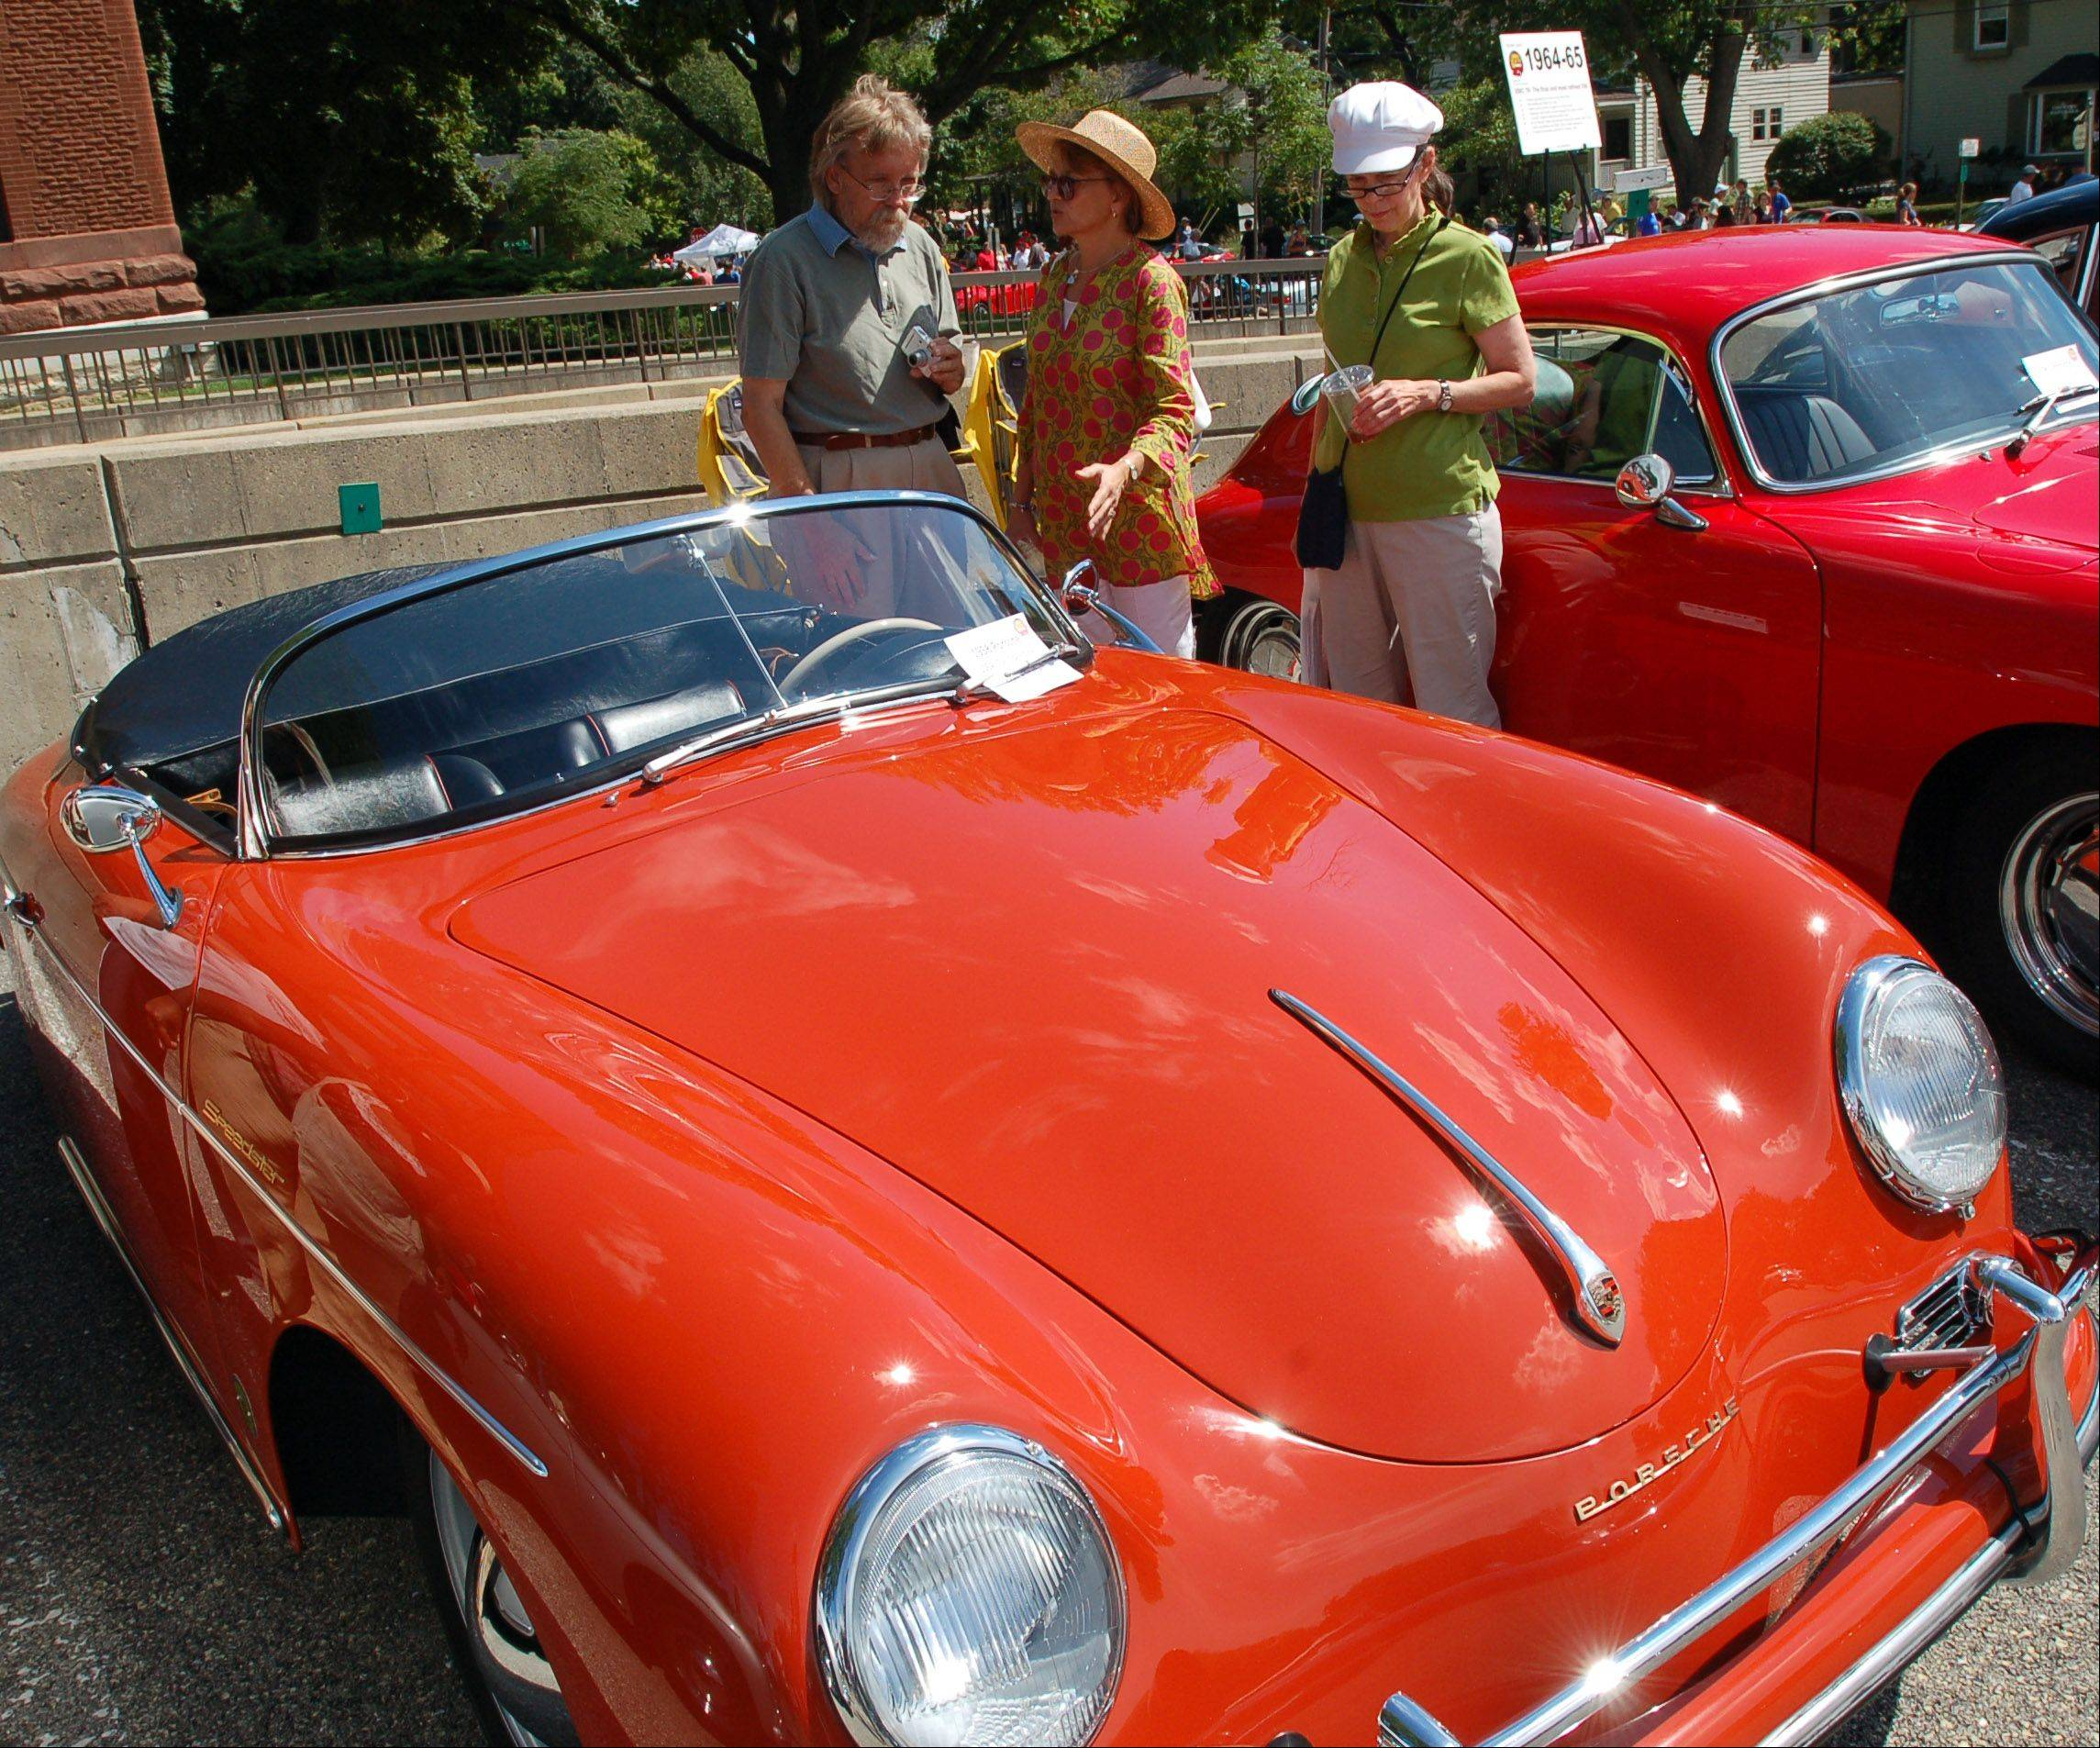 From left, Tom Drebenstedt of Chicago, Chris Aupperle of Rockford and Kathy Chilis of Chicago check out a 1958 Porsche 356A (T2) Speedster owned by Tom Kingbell during a previous Geneva Concours d'Elegance classic car show. This year's show is on Sunday, Aug. 25 in downtown Geneva.